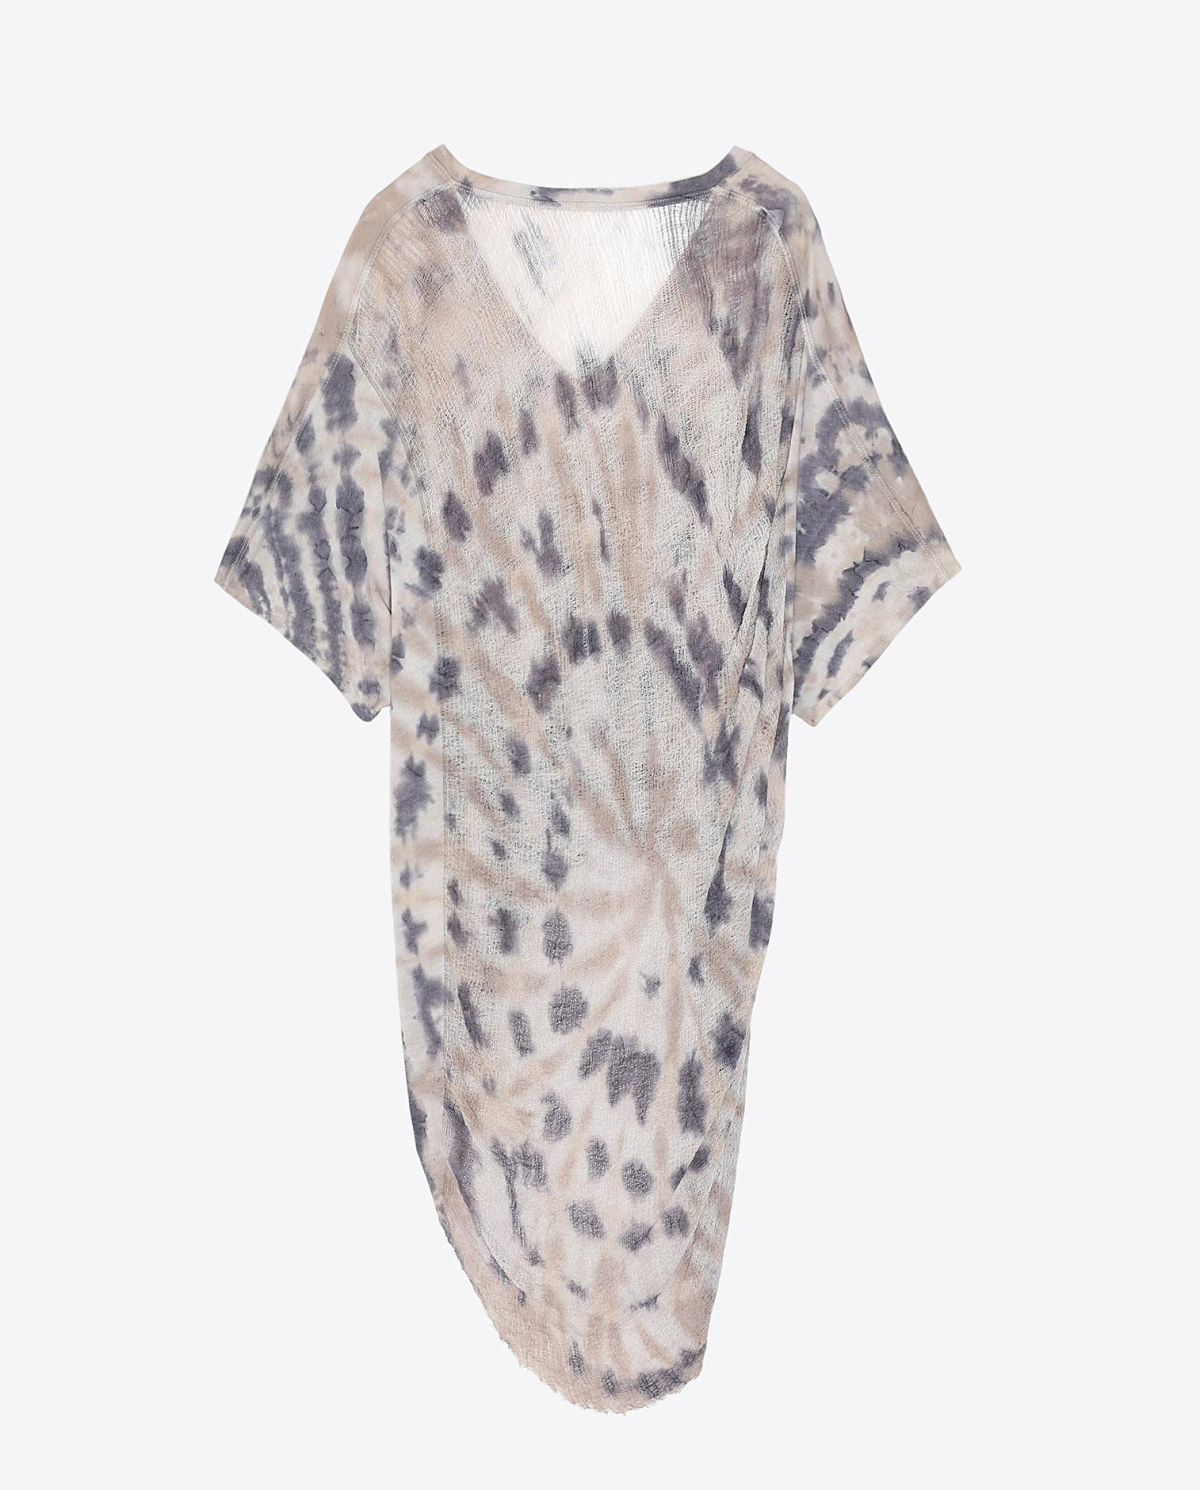 Raquel Allegra Pré-Collection Cocoon V Neck Tie & Dye - Sand Dollar